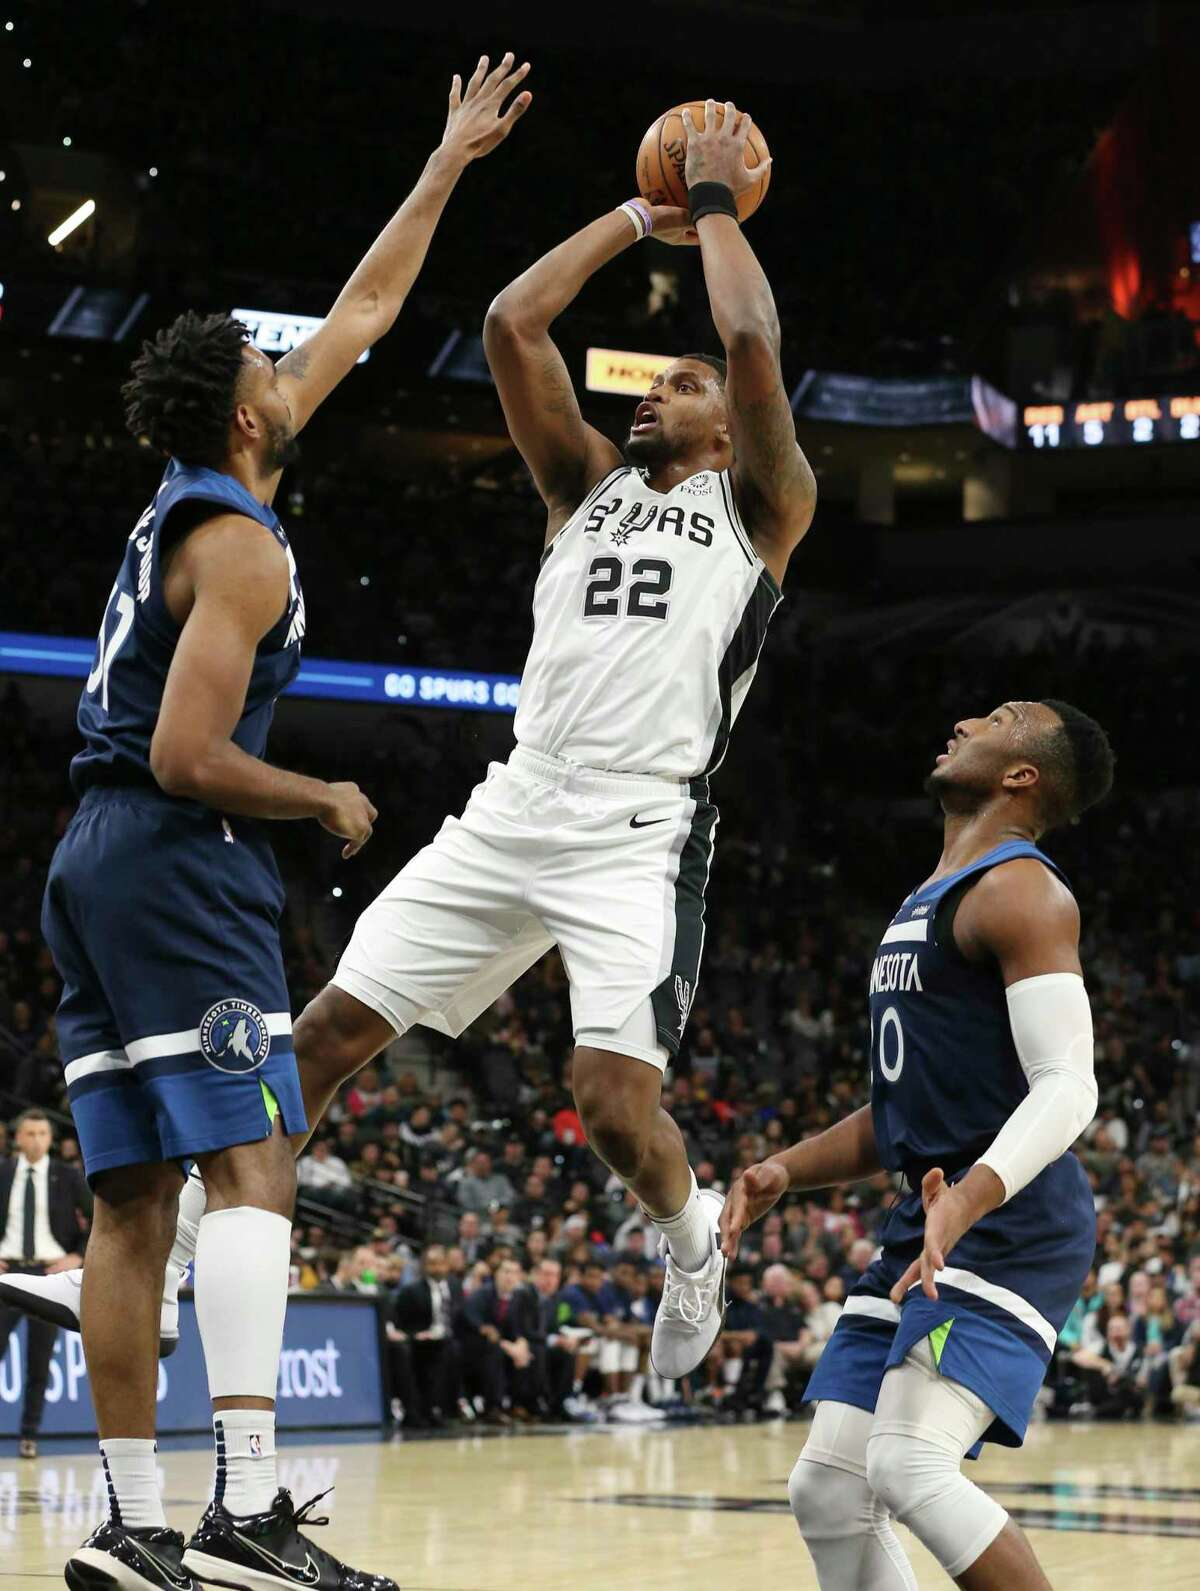 Spurs' Rudy Gay (22) shoots against Minnesota Timberwolves' Keita Bates-Diop (31) and Jeff Teague (00) during their game at the AT&T Center on Wednesday, Nov. 27, 2019.